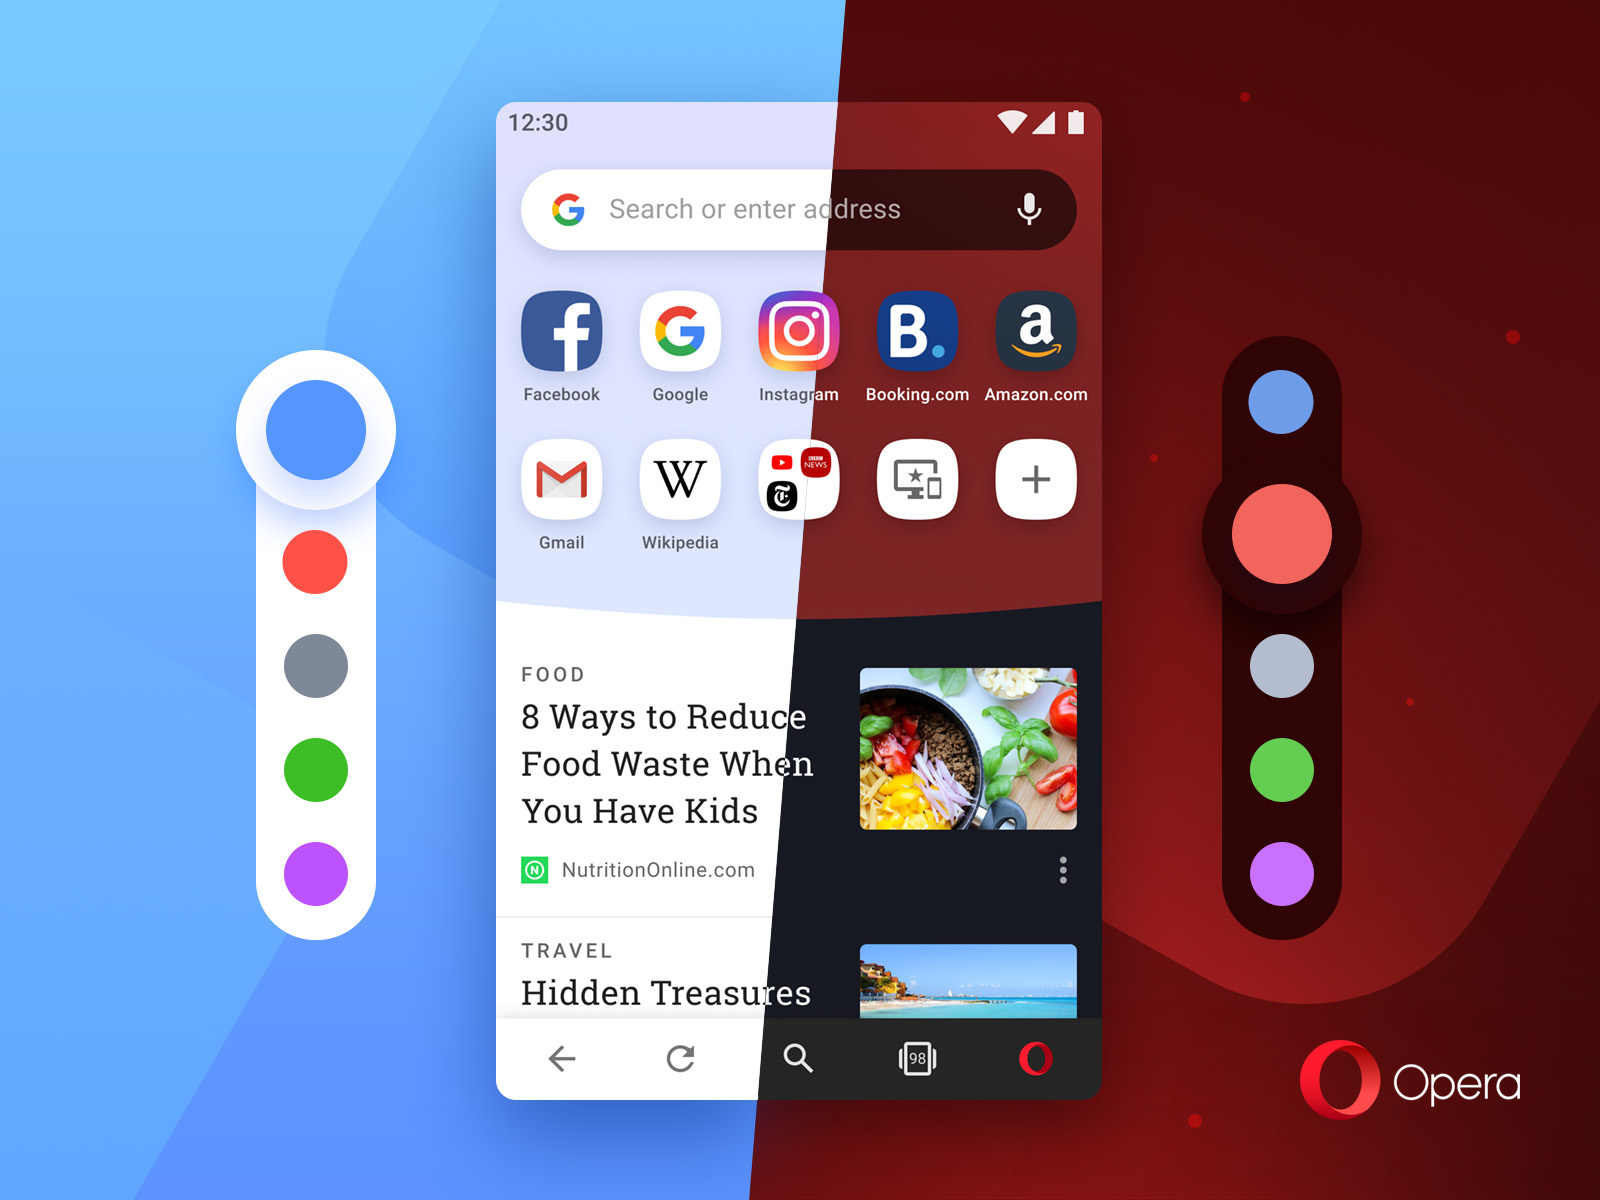 Opera for Android offers 10 colors to choose from